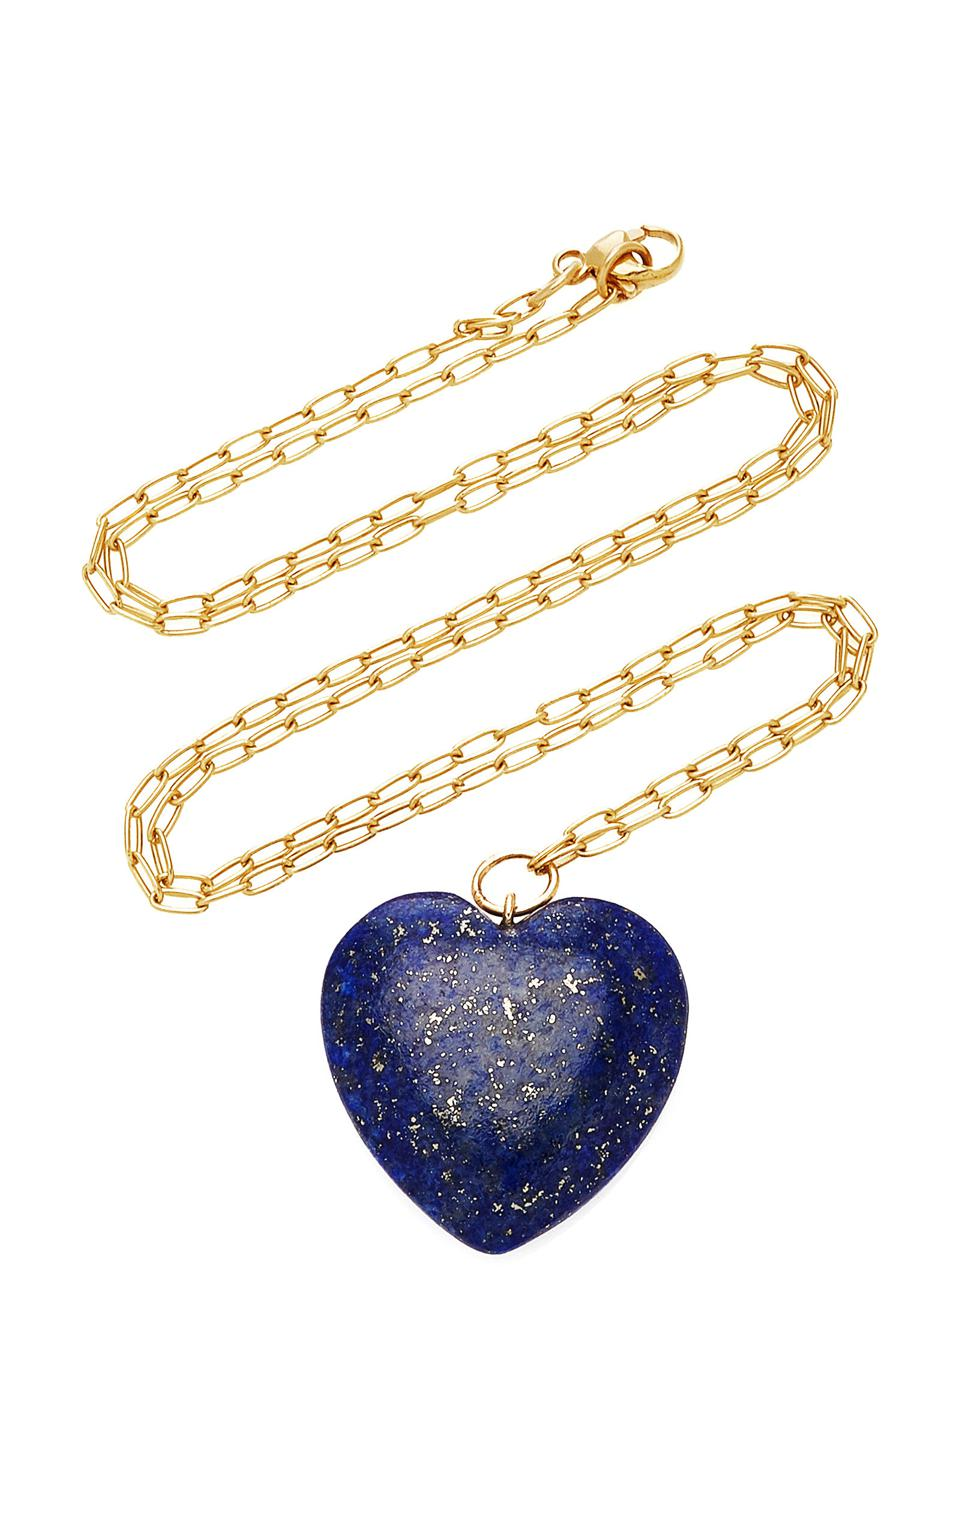 Lapis lazui and 18-karat gold necklace by New York luxury brand Haute Victoire is available online at Moda Operandi